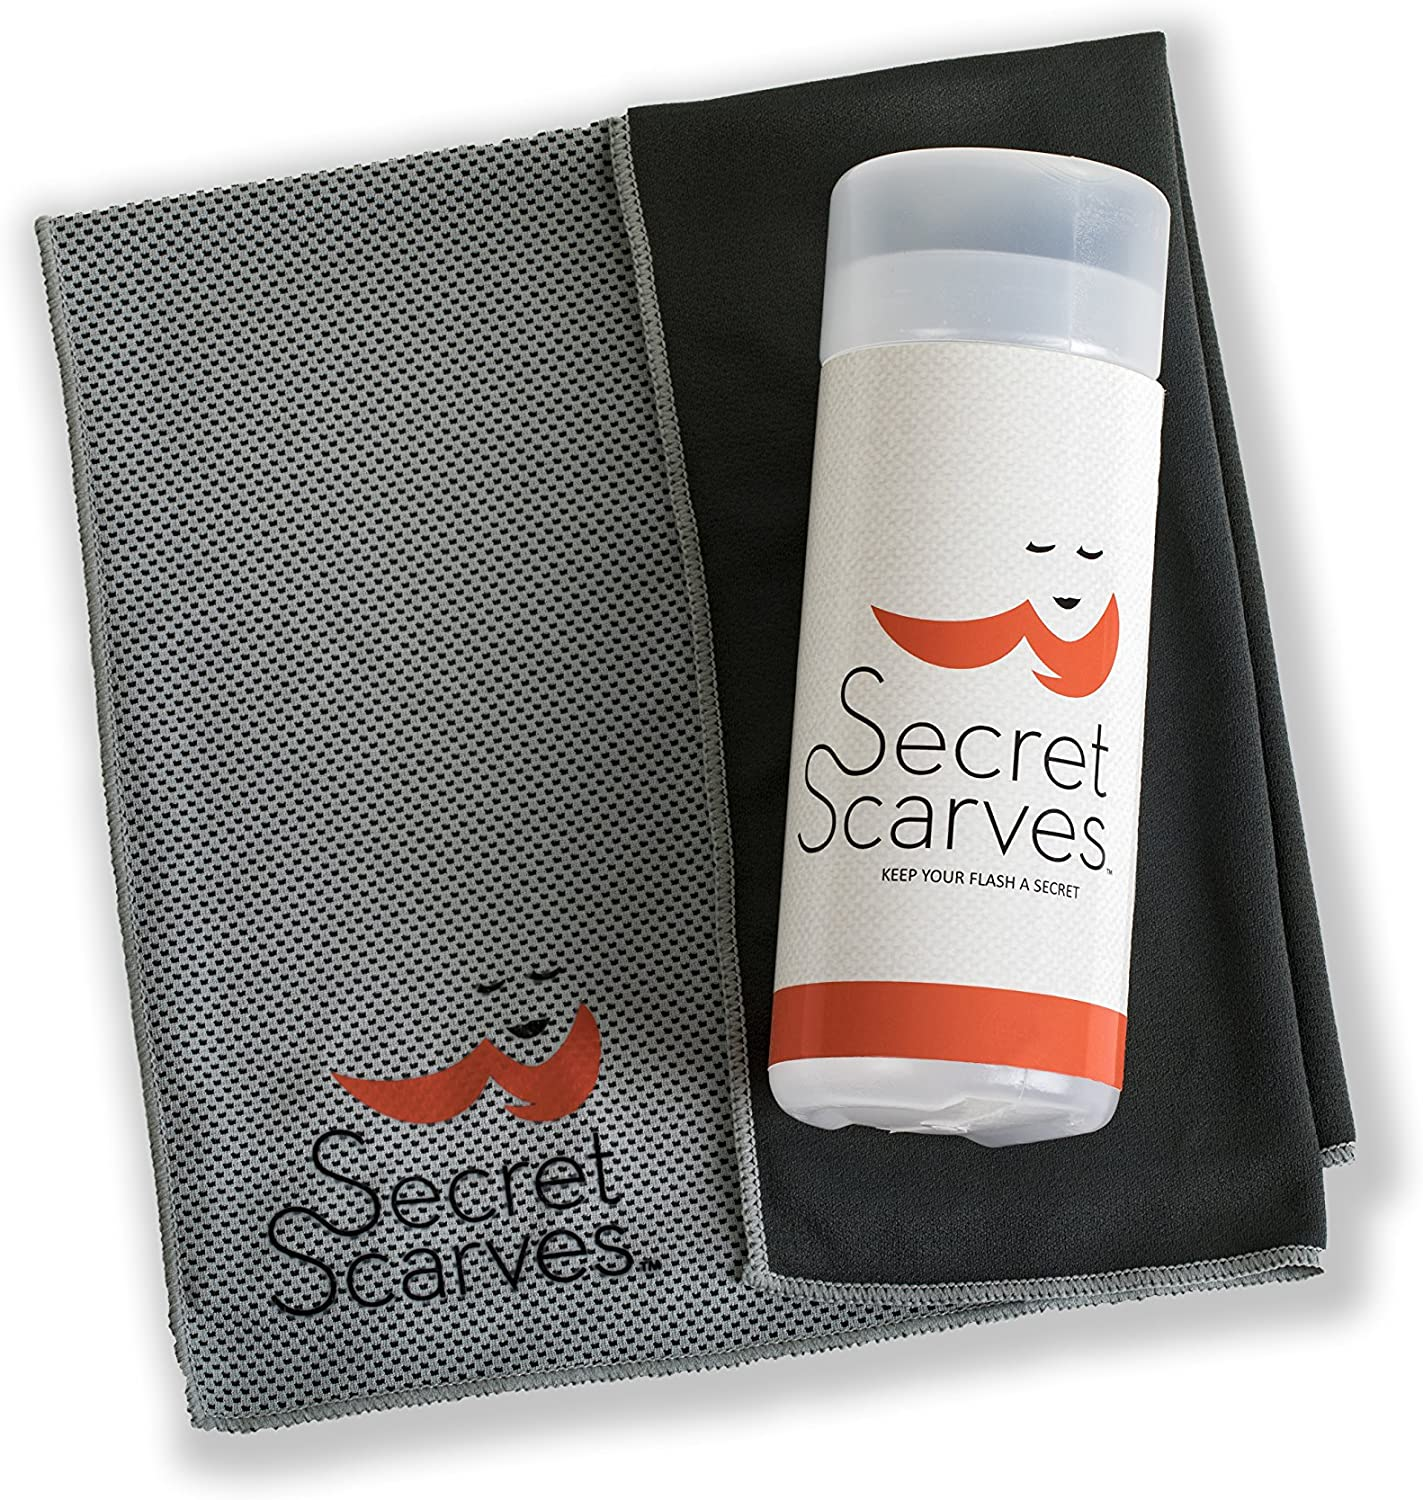 Secret Scarves Cooling Insert - Hide Your Hot Flash Symptoms